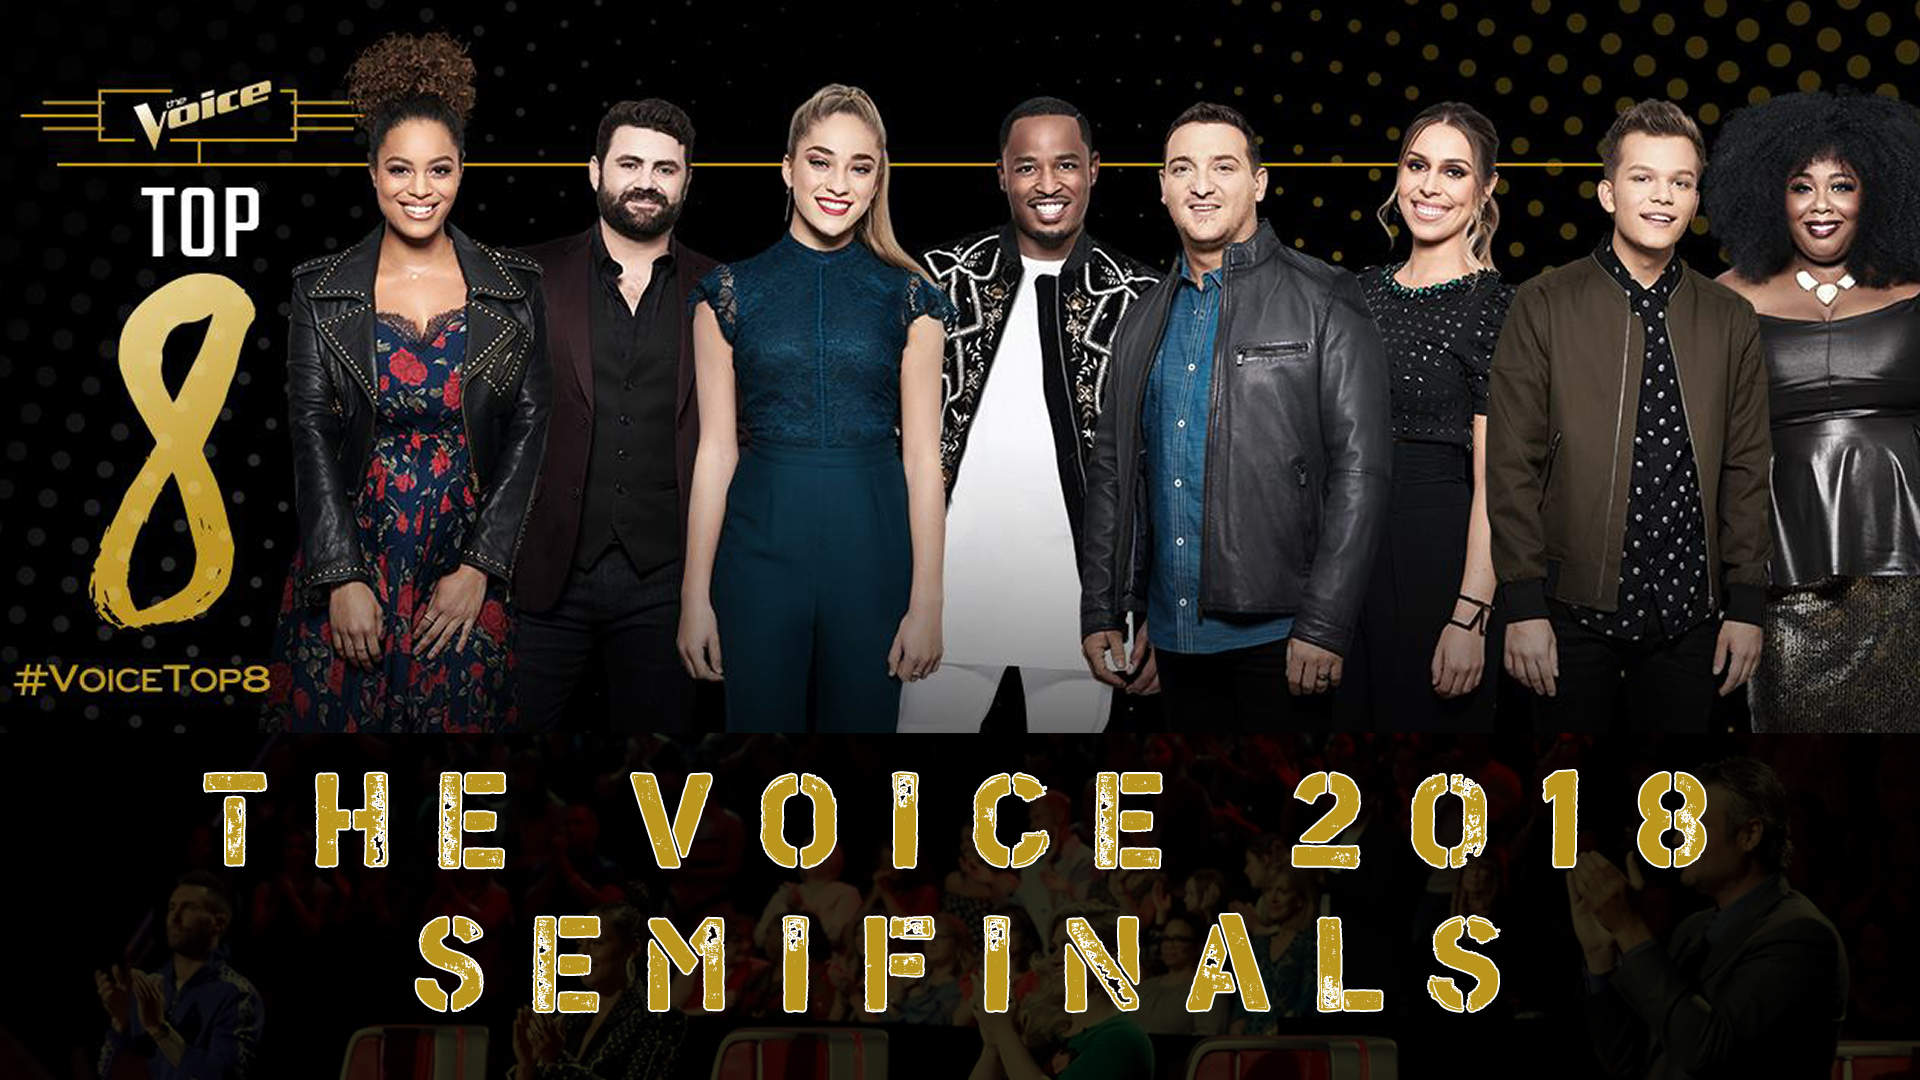 Watch The Voice 2018 Season 14 Top 8 (Semifinals) Full Episode on 14 May 2018 with Vote The voice Voting App tonight